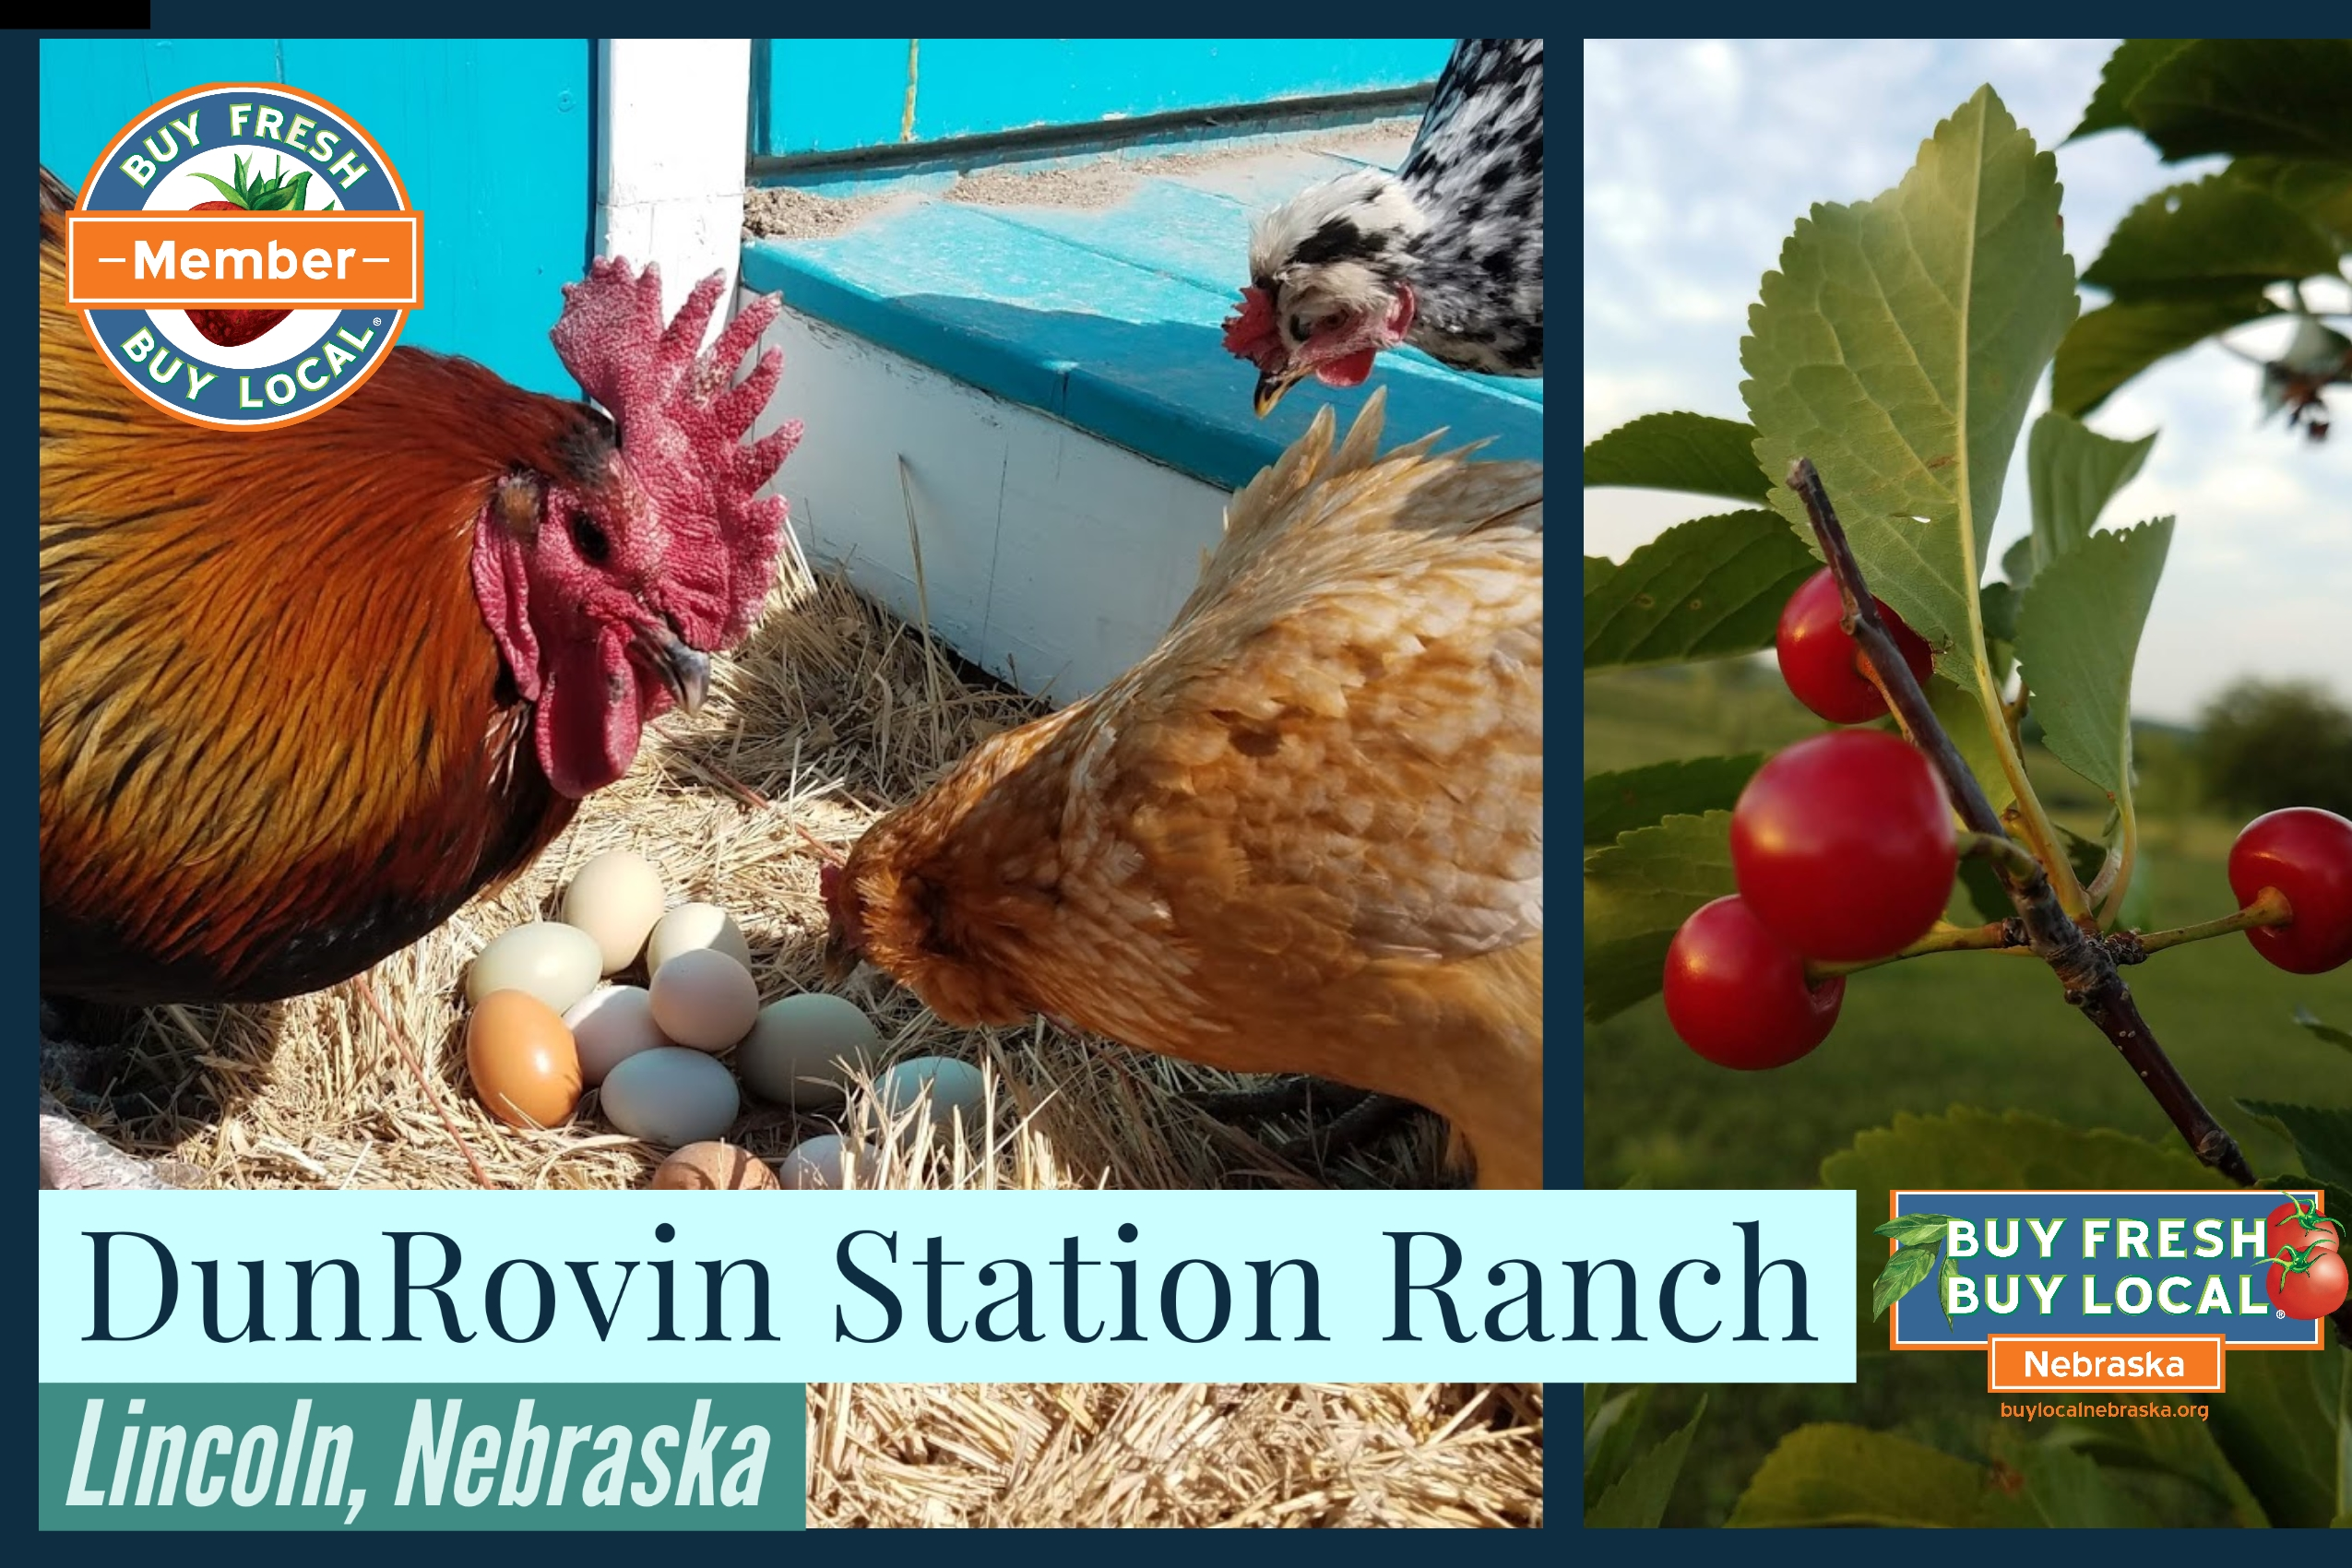 DunRovin Station Ranch Promotional Image